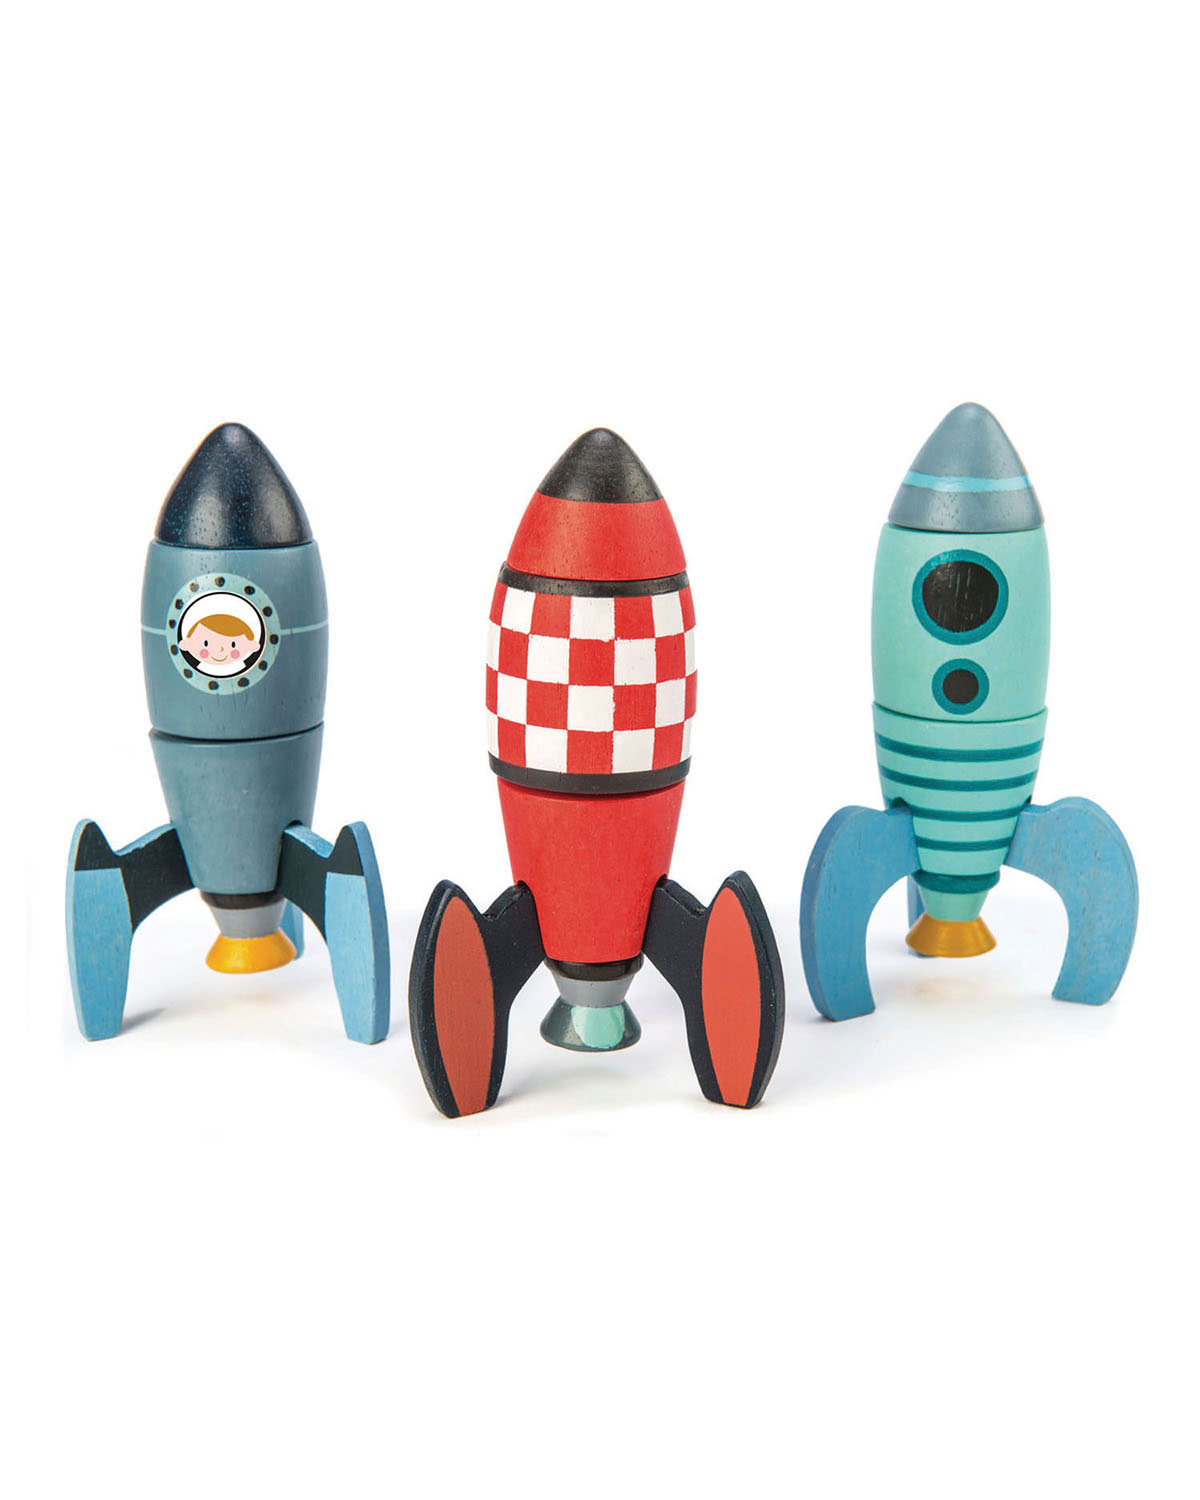 Tender Leaf Toys Rocket Construction Play Set